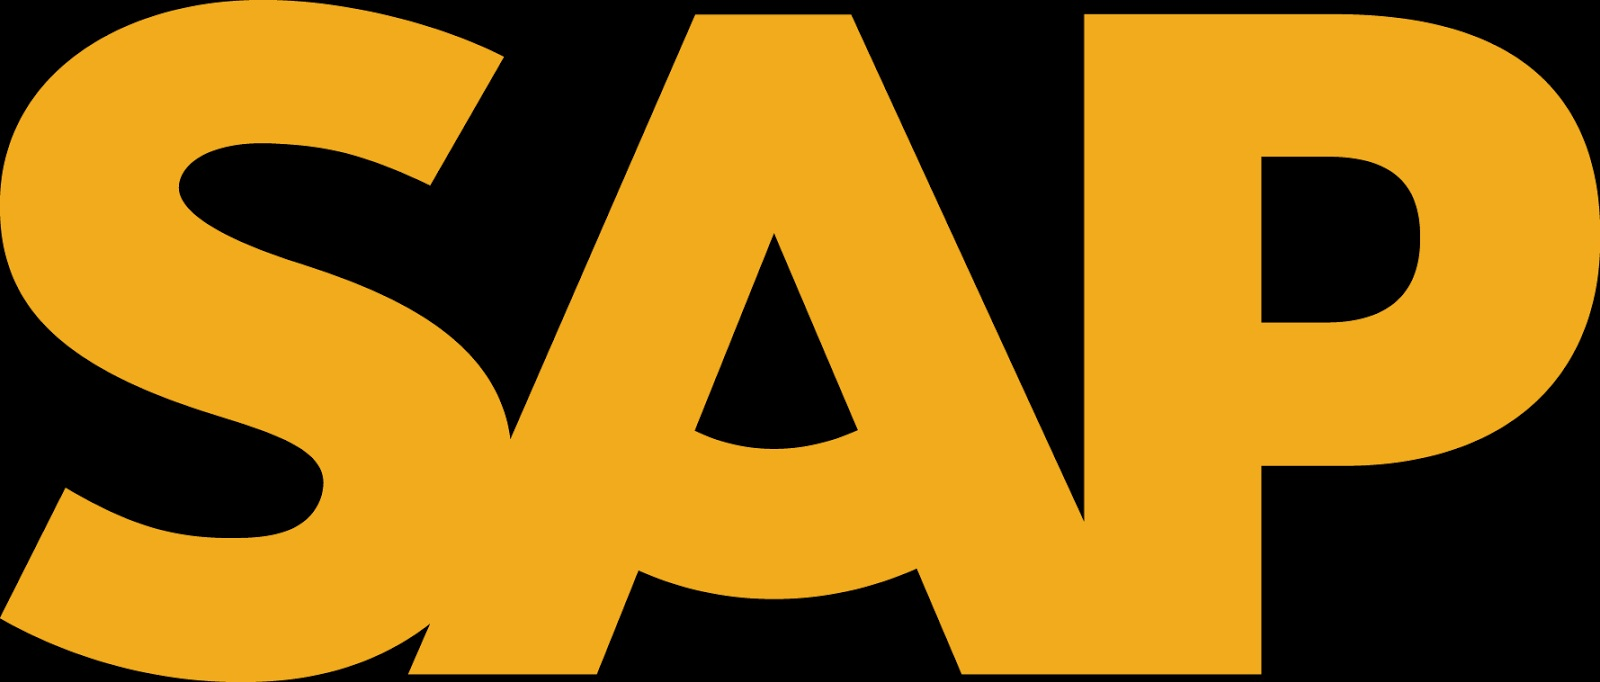 SAP Has Released New Logo